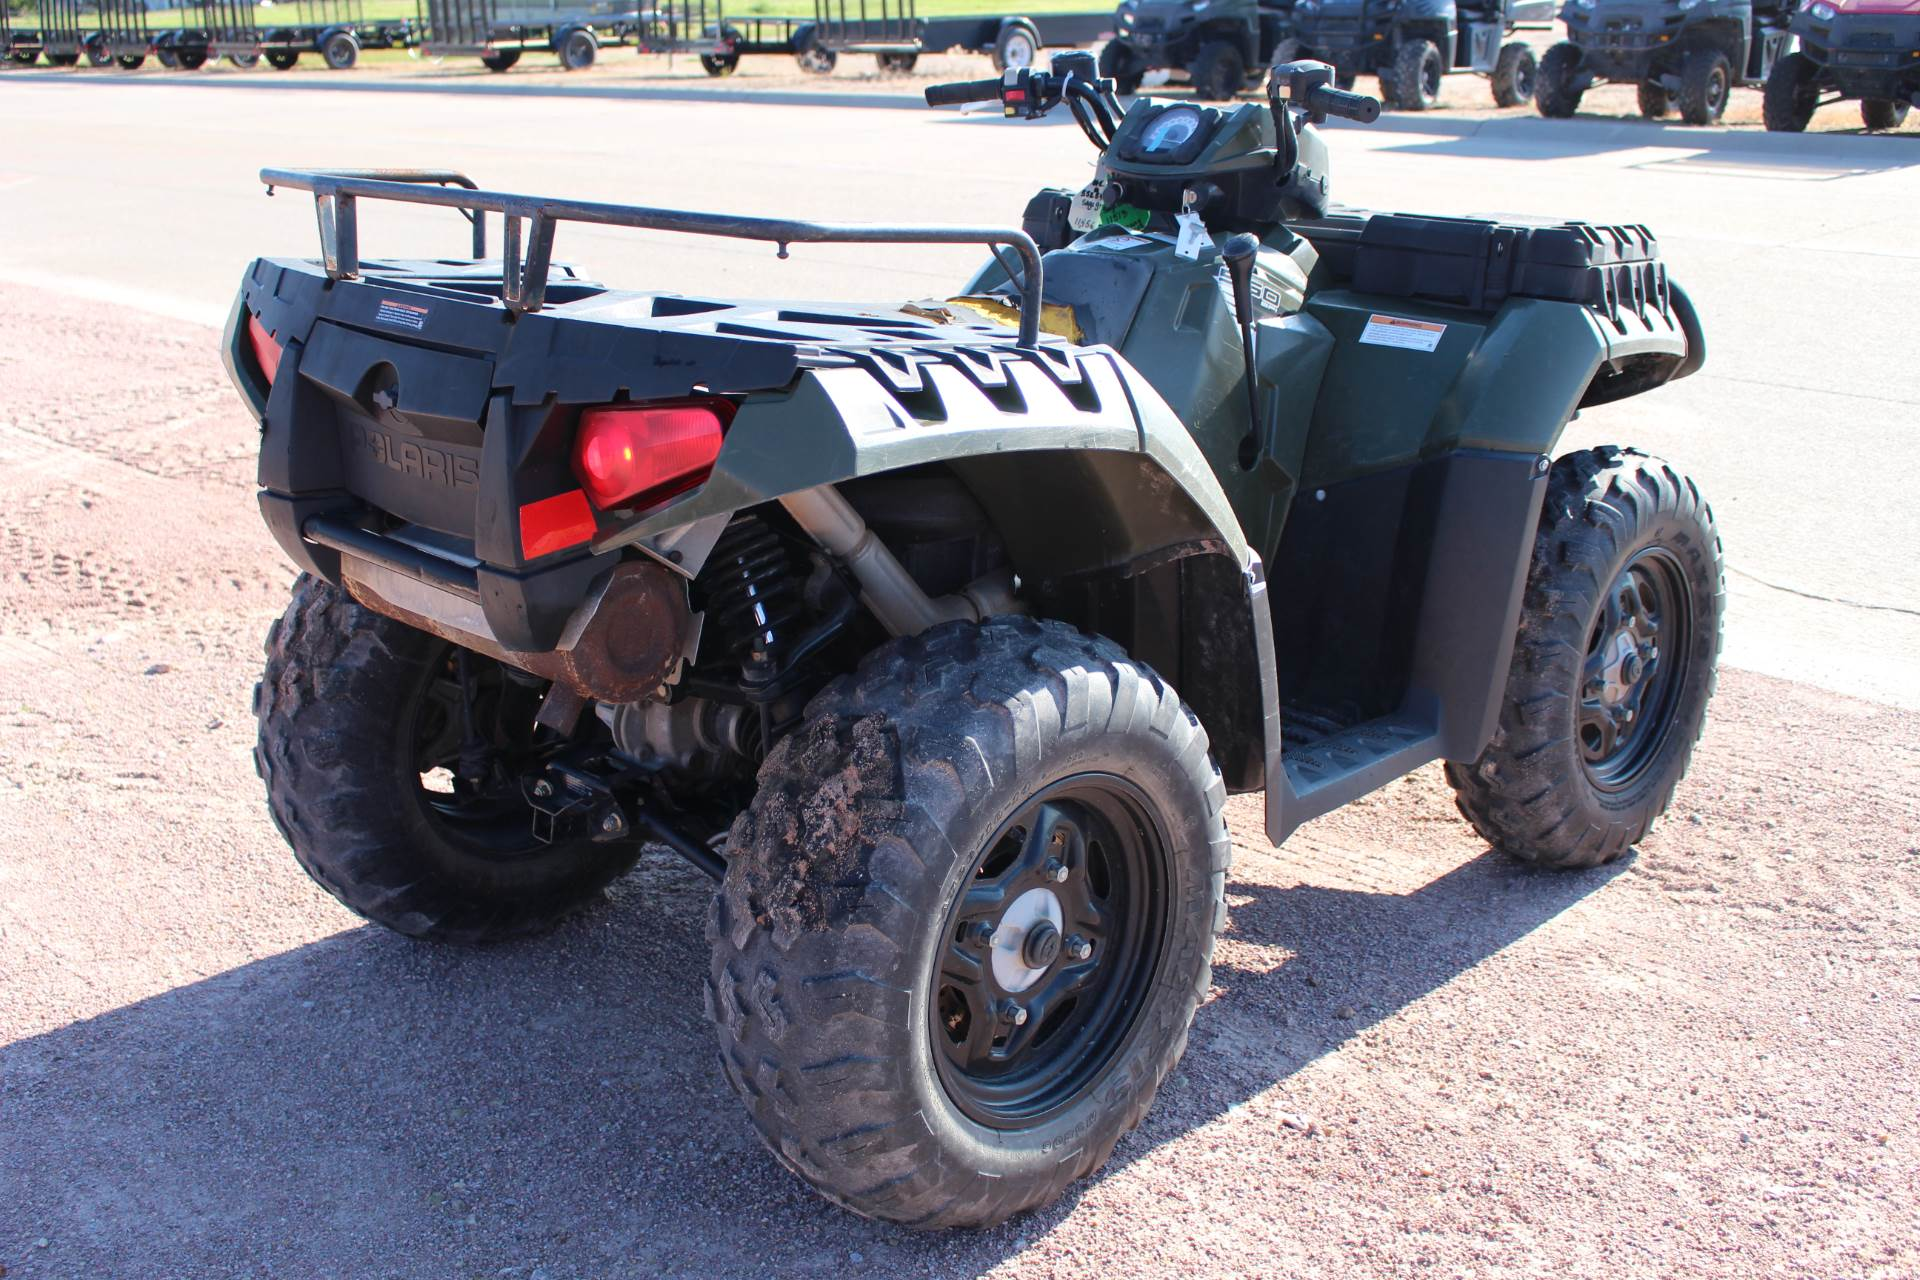 2013 Polaris Sportsman® 550 in Valentine, Nebraska - Photo 5